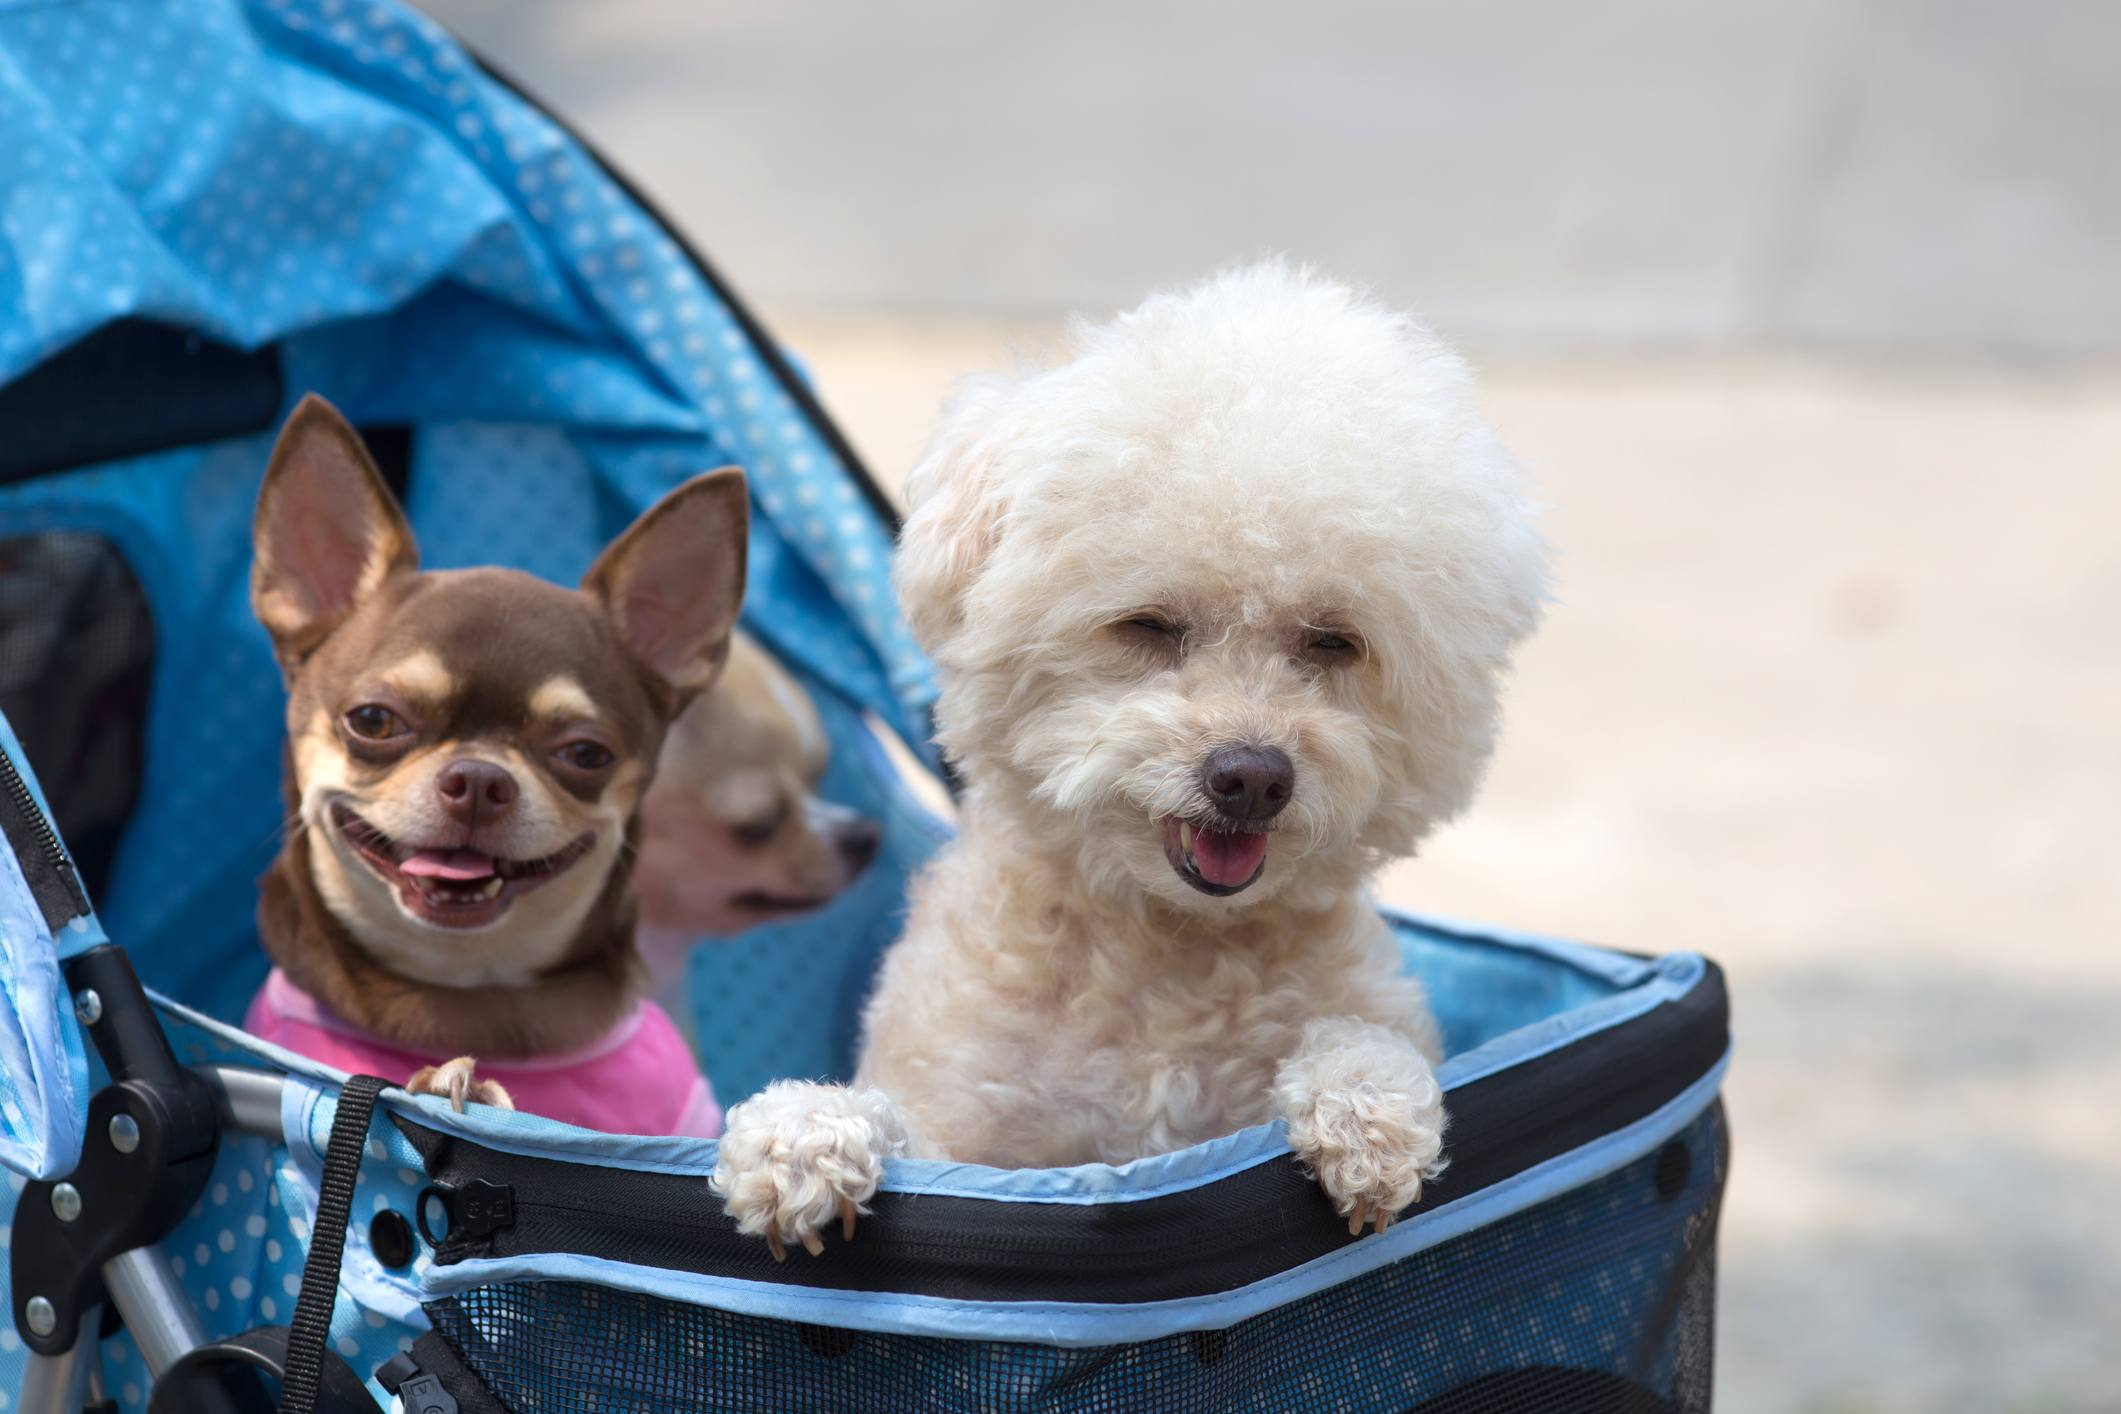 Dogs in strollers